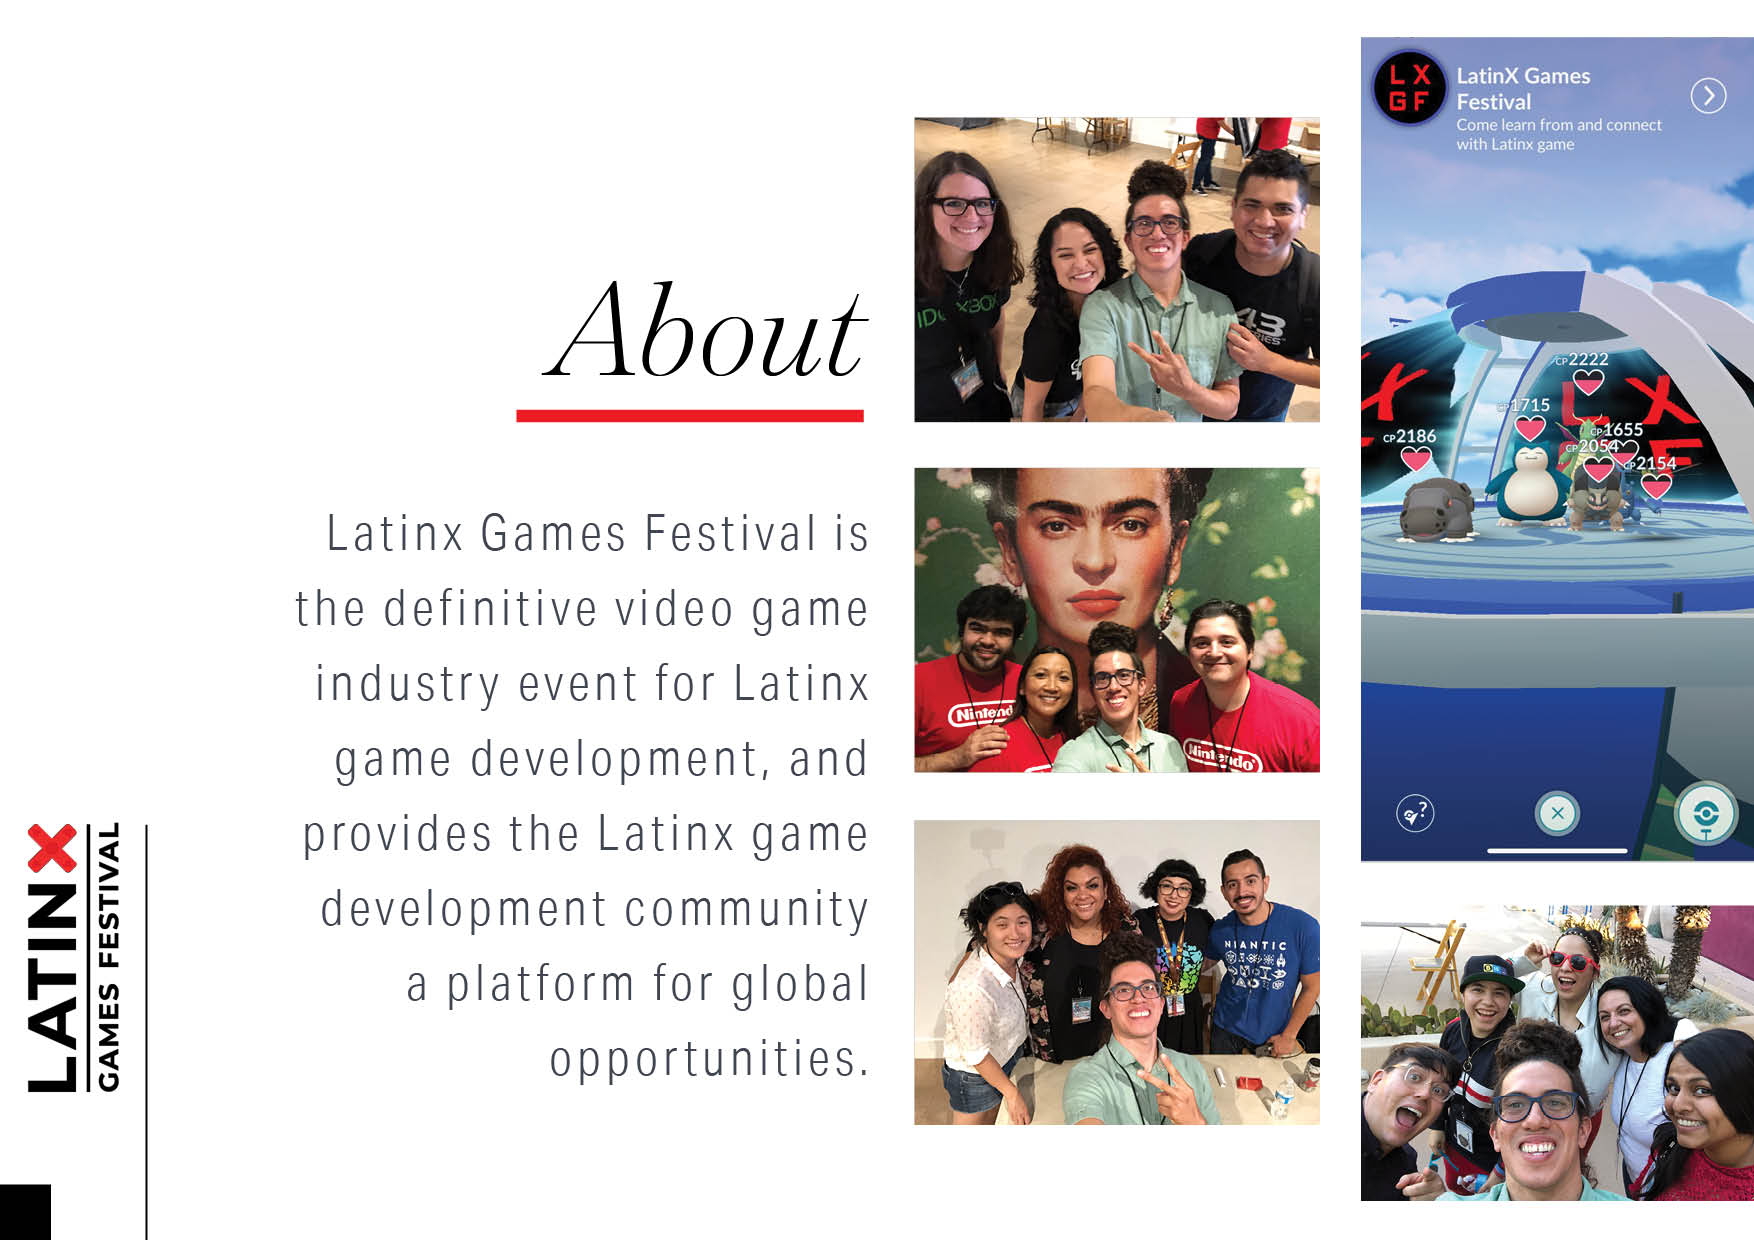 Latinx Games Festival About